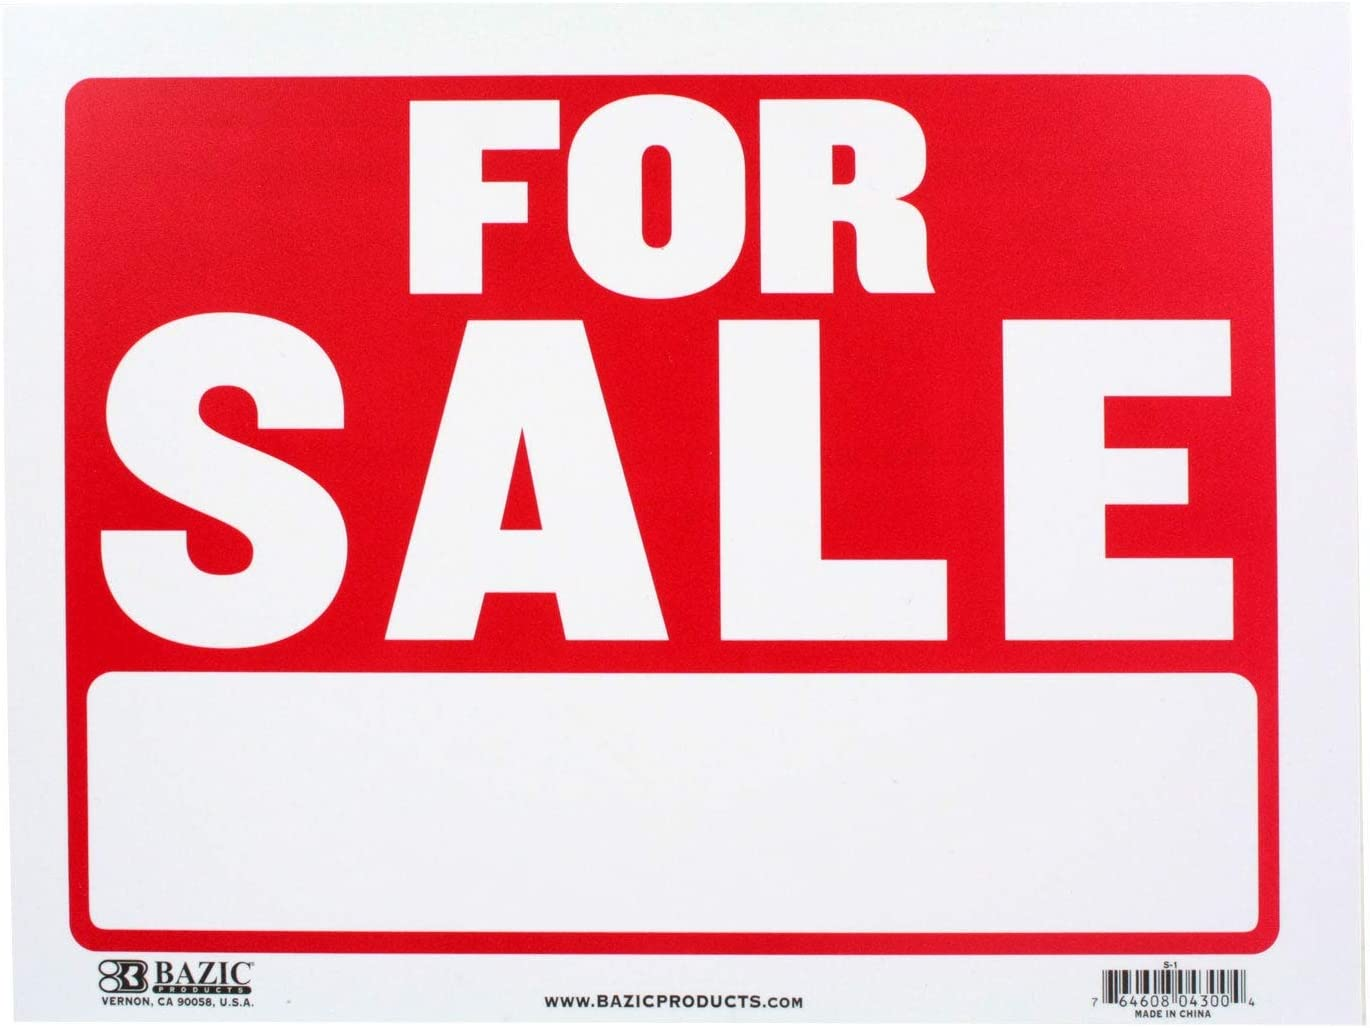 "BAZIC 9"" X 12"" for Sale Sign, Yard Sale Garage Sale Retail Store Policy Business Plastic Signs, Wall Door Border, Waterproof Indoor Outdoor Advertising Signage"